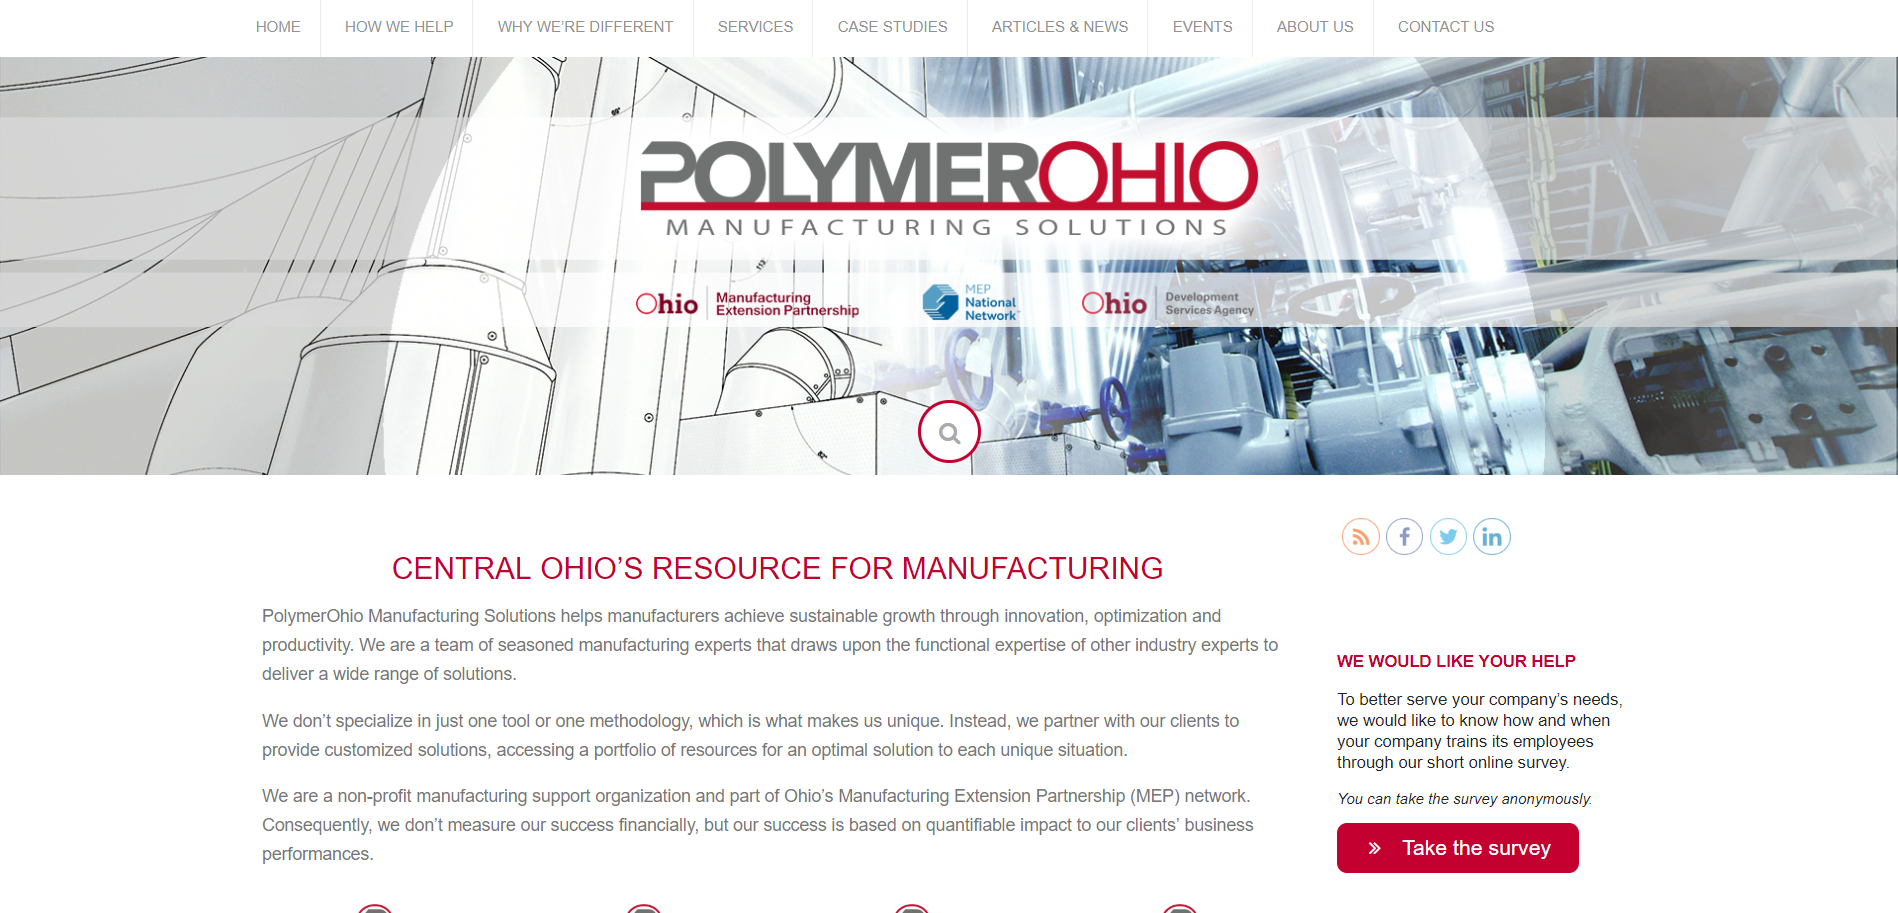 PolymerOhio Manufacturing Solutions website thumbnail